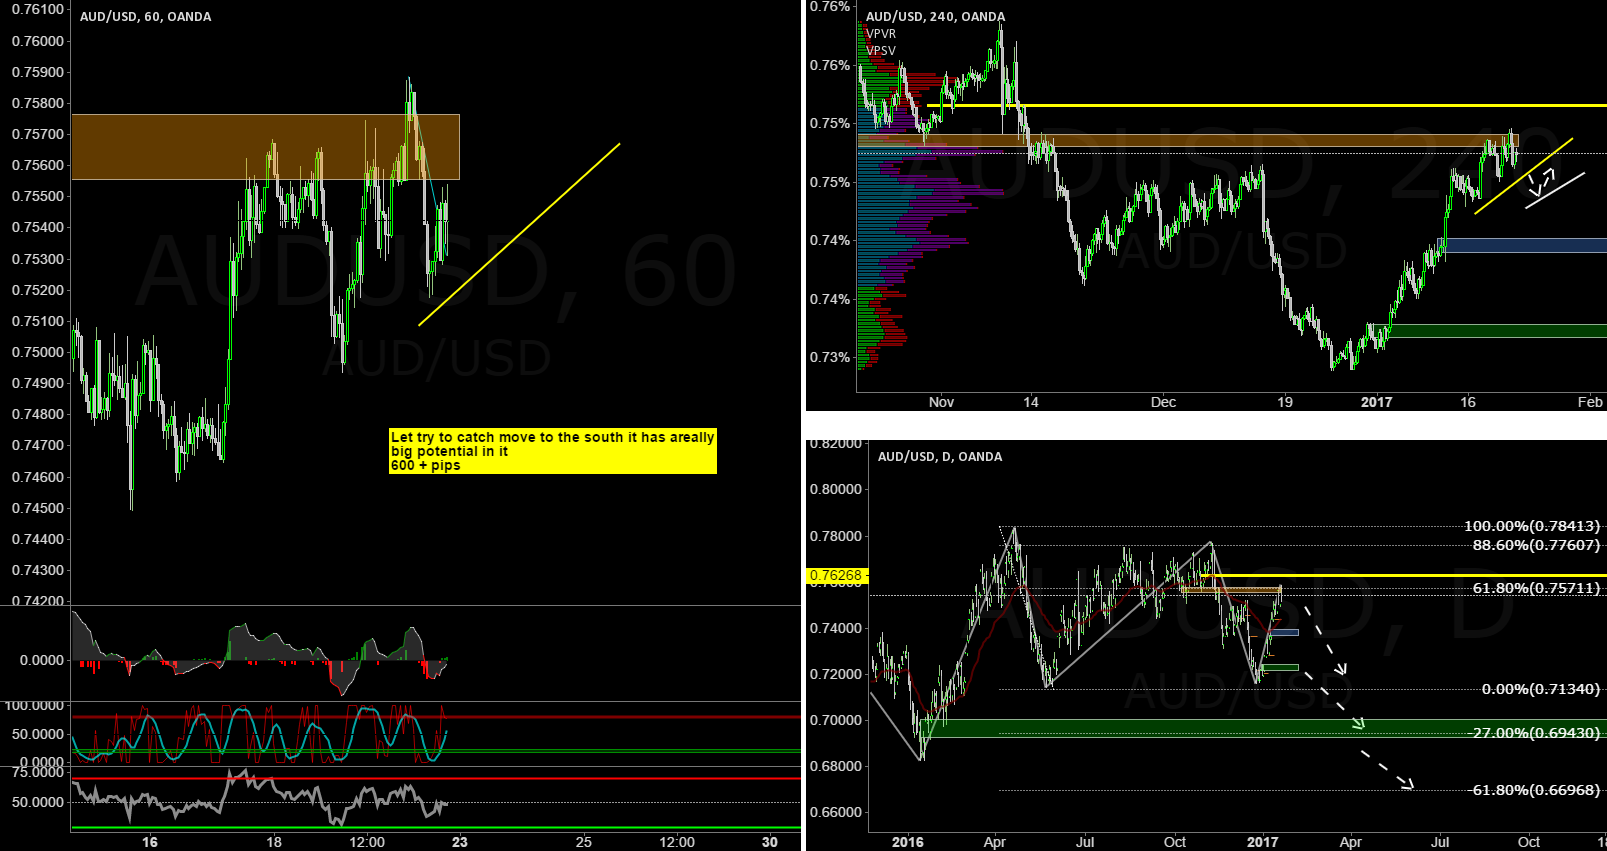 AUDUSD one of my preferred instrumentsfor shorting next 2 months